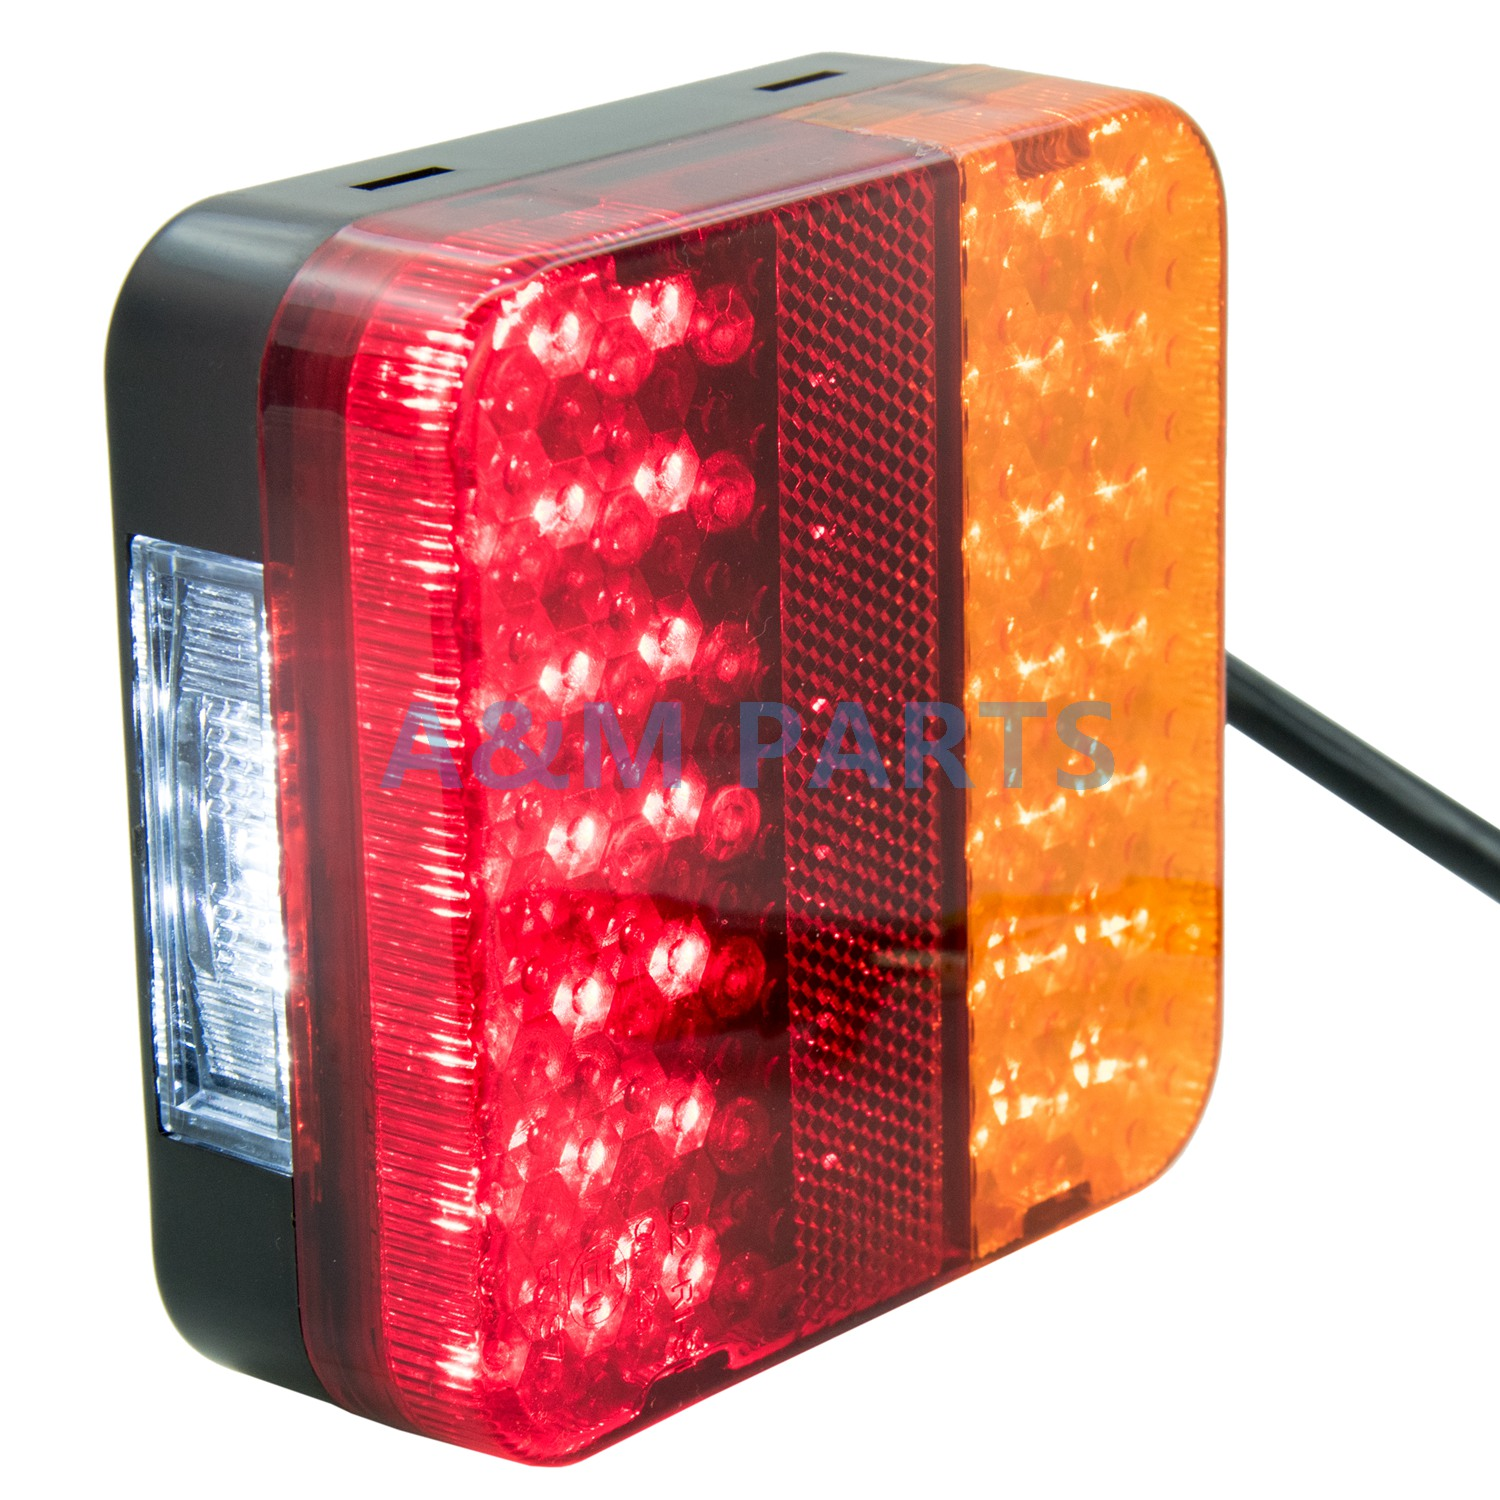 Square LED Boat Combination Trailer Light Kit With License Plate Light Stop Tail Indicator Turn Signal Trailer Light 12V 47 LEDs yamaha led trailer light kit